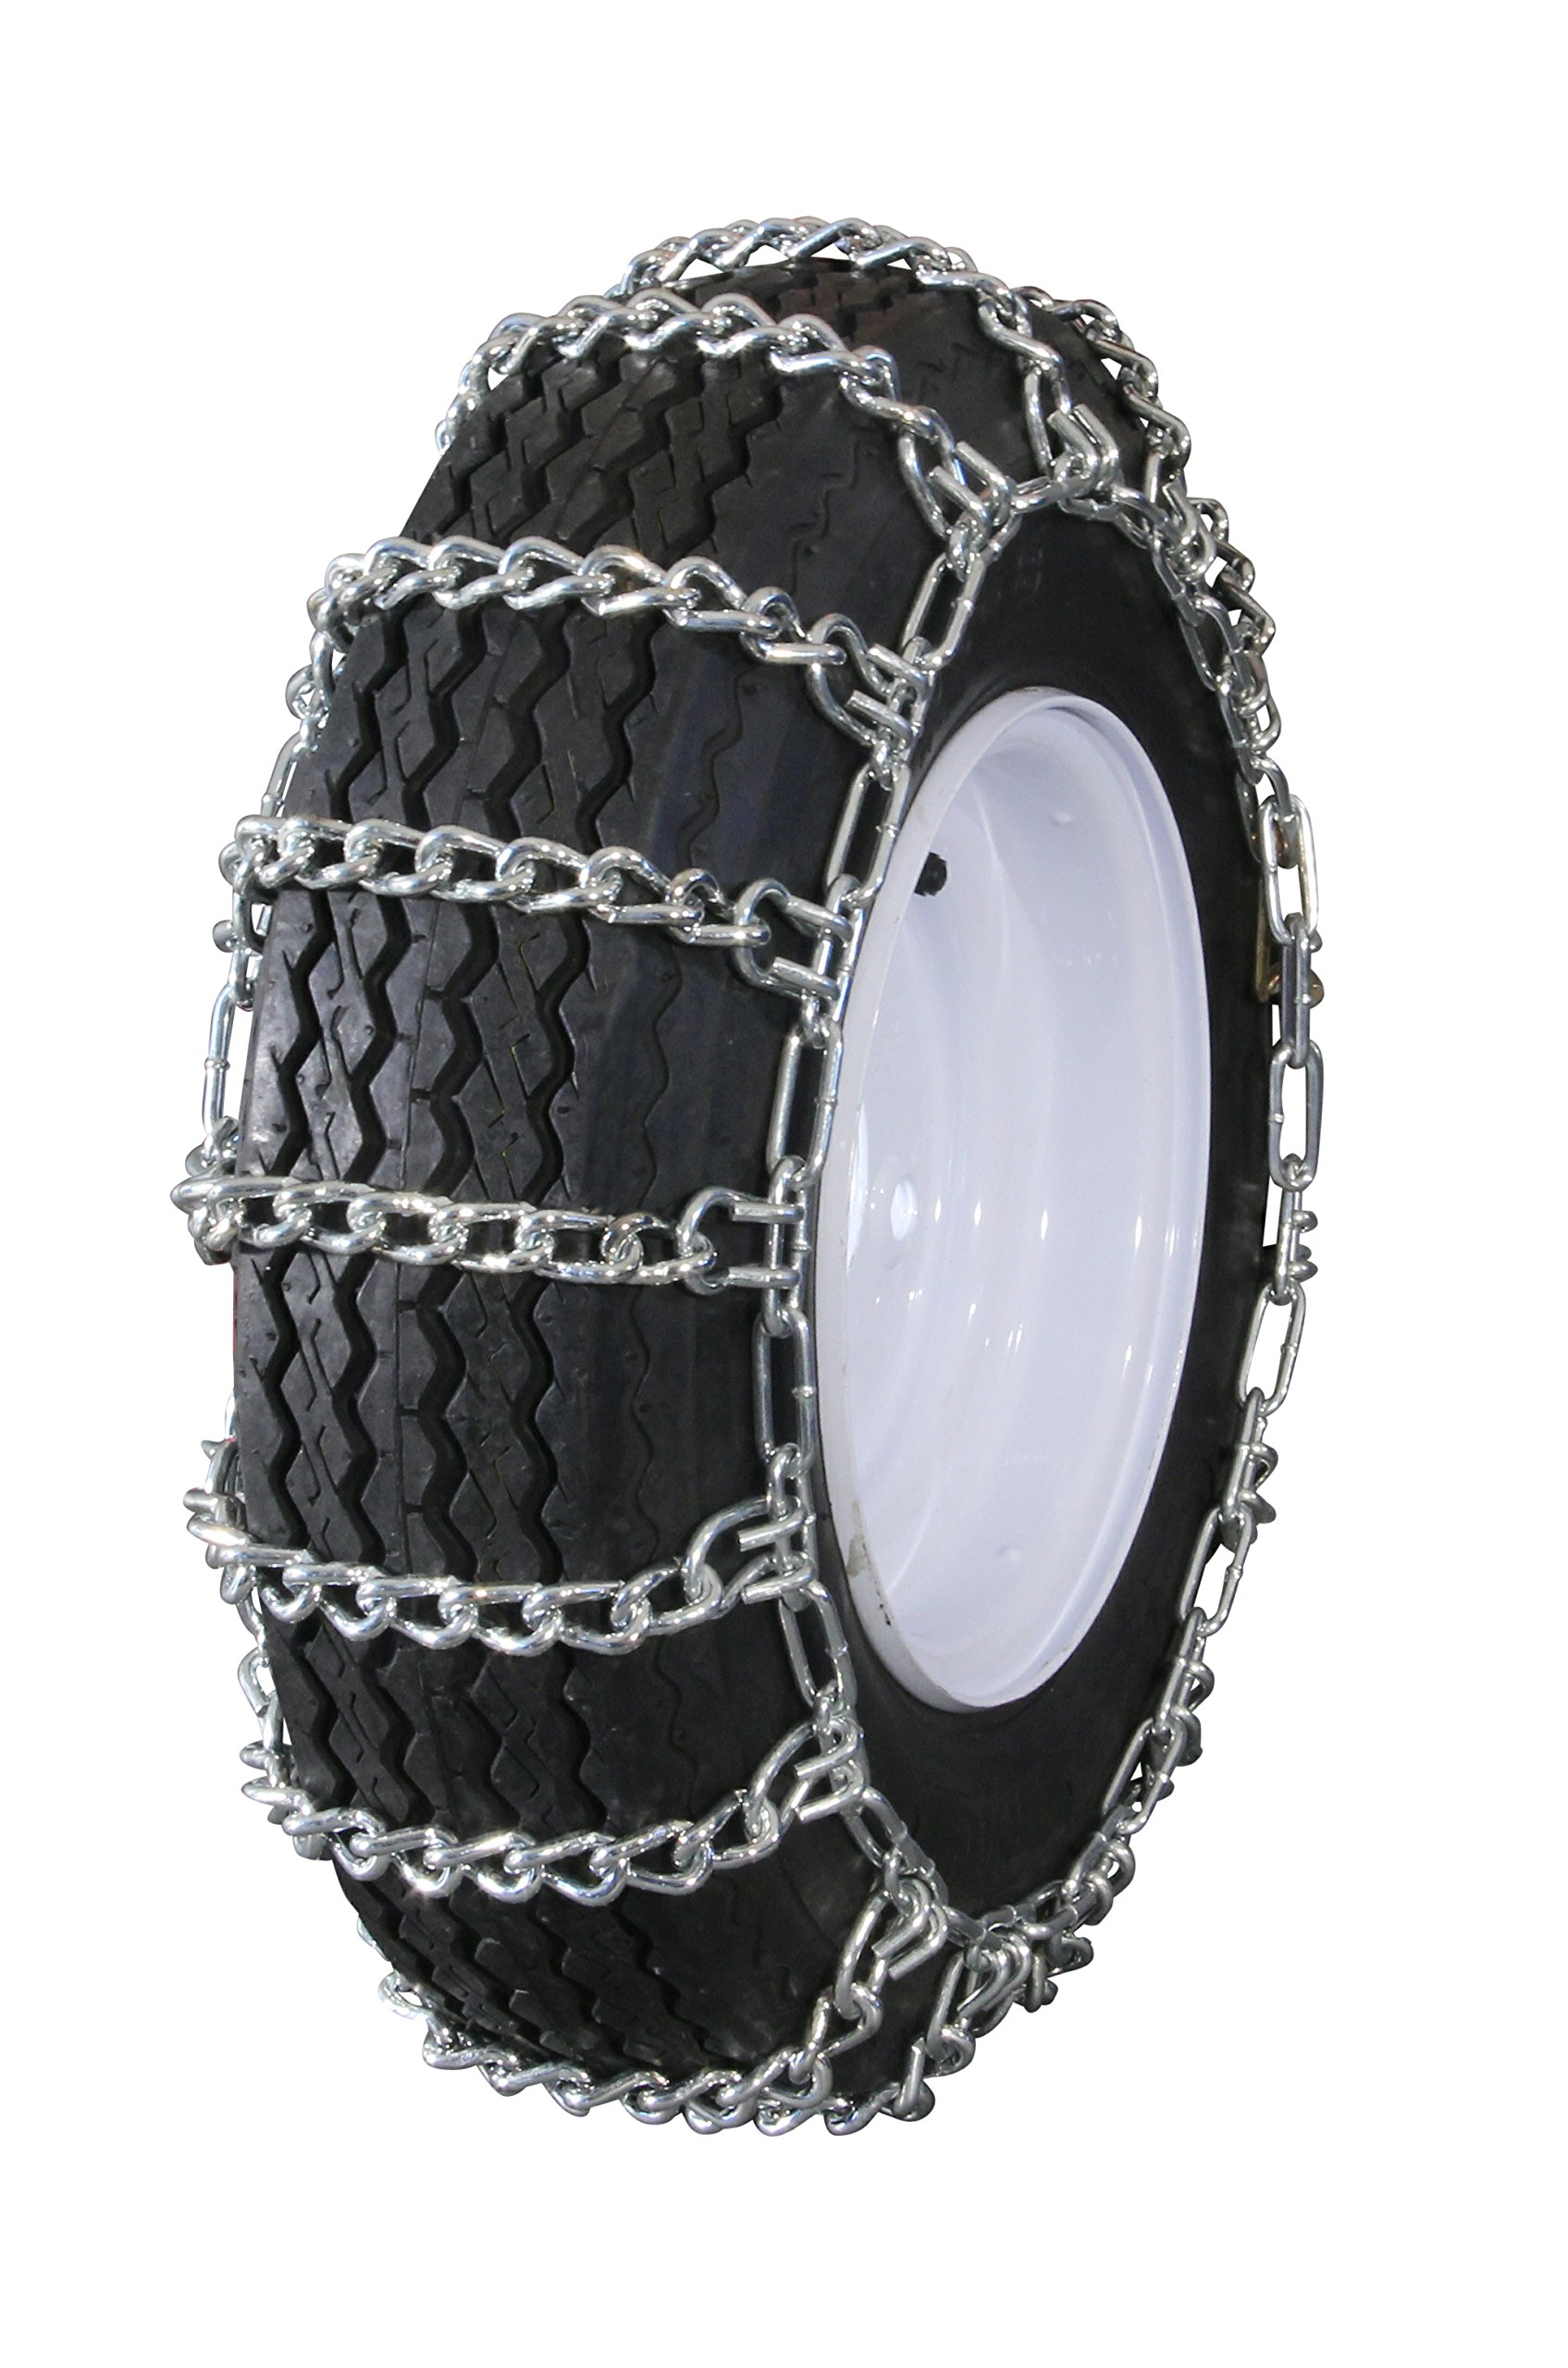 Peerless MTL-417 Garden Tractor 2 link Ladder Style Tire Chains 12x3, 4.50x4, 4.10x5, 3.50x5, 4.10/3.50-5 by MaxTrac (Image #3)